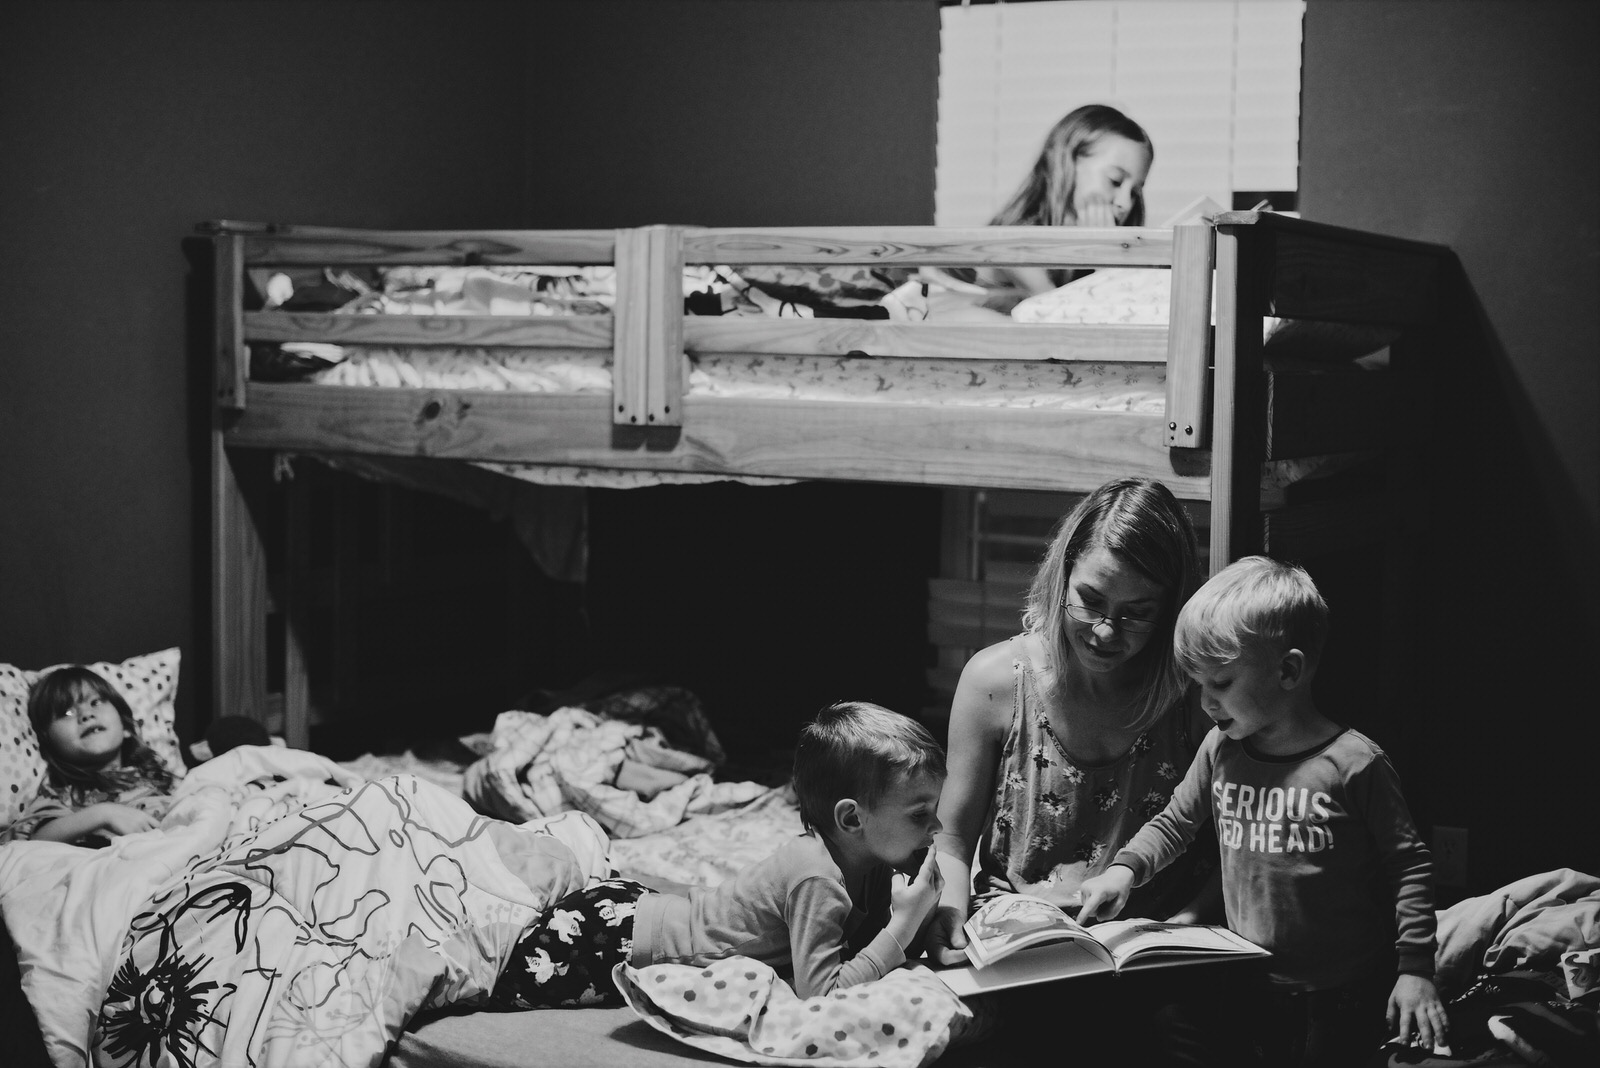 Bedtime Family Photography Session